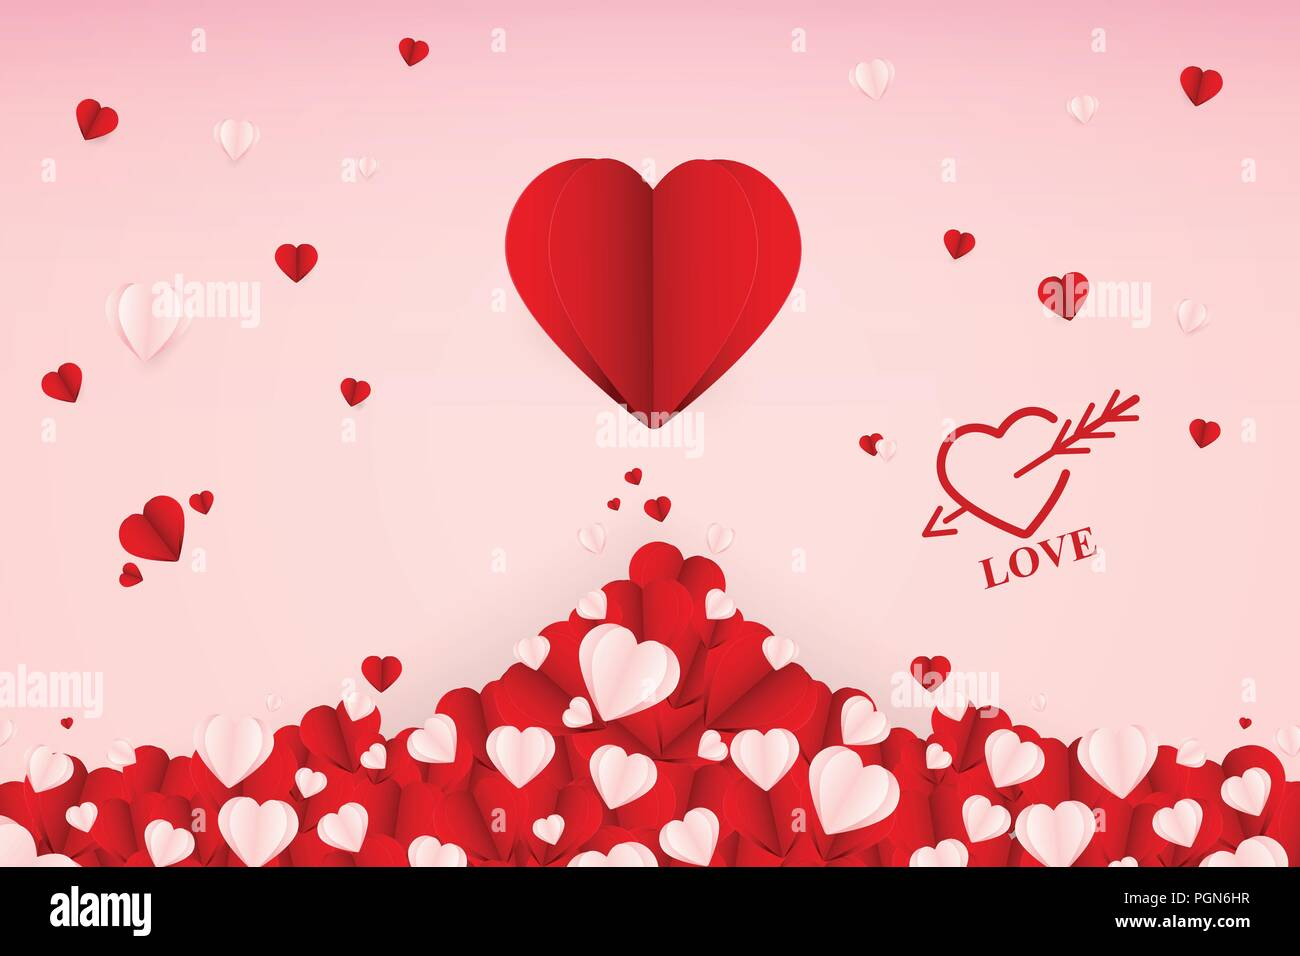 Abstract Paper art Love Heart vector Background illustration - Stock Image